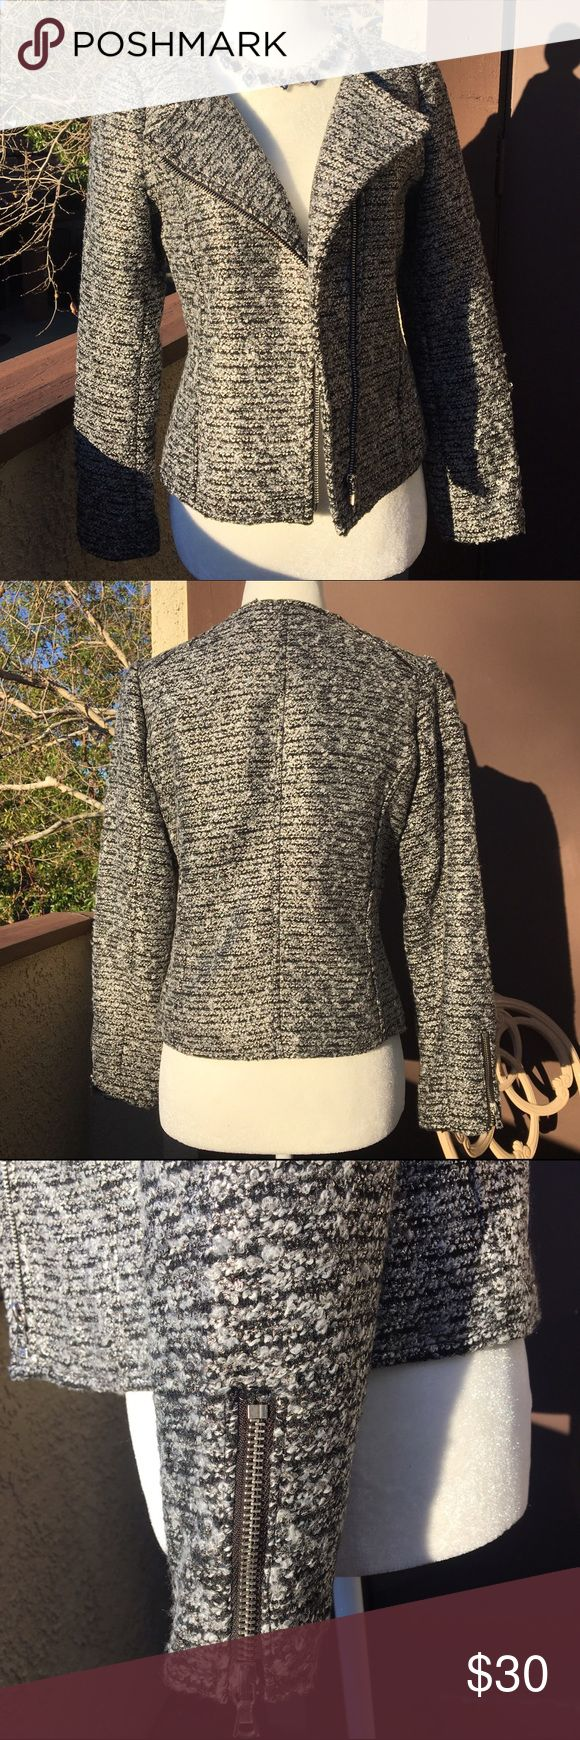 H&M Boucle Moto Jacket Blazer Excellent condition! Beautiful moto style blazer with zipper sleeves. Worn only once. Note that H&M clothing runs a little small. I would say it's more of a size 4. H&M Jackets & Coats Blazers